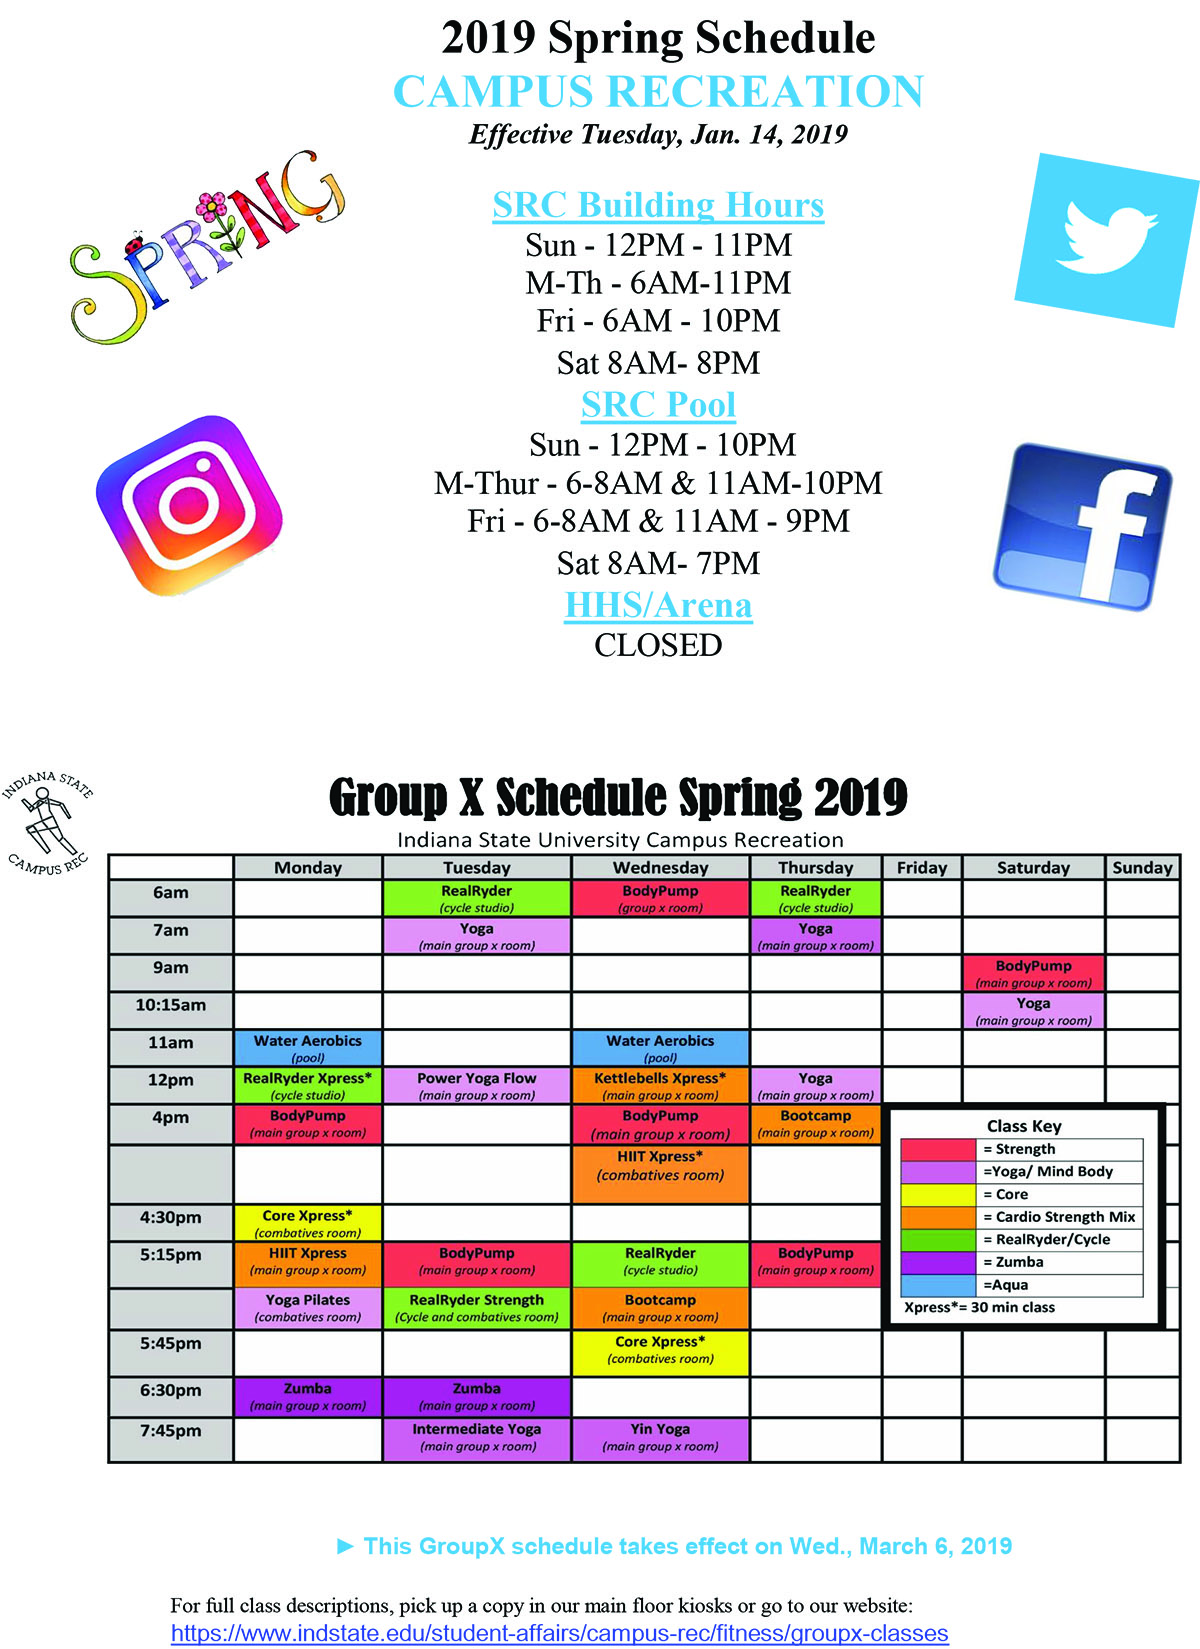 Spring 2019 Schedule March 6 udpate for GroupX